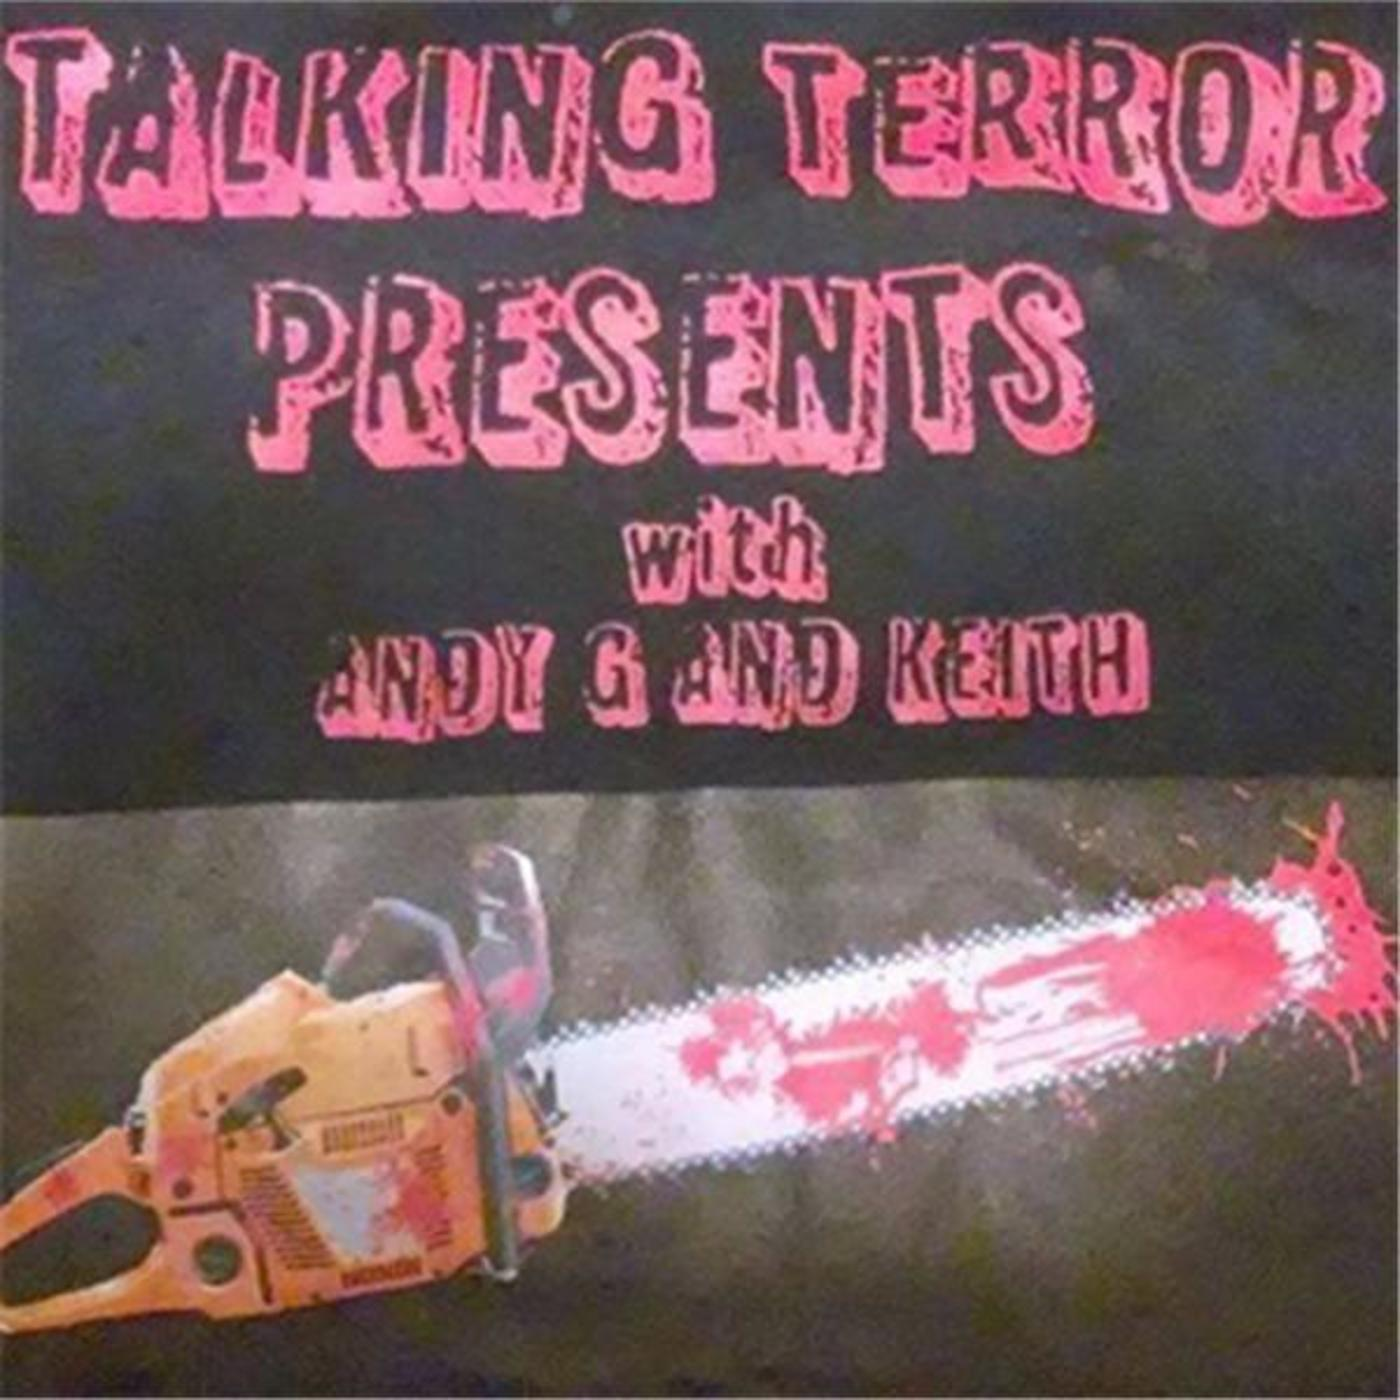 Talking Terror Presents